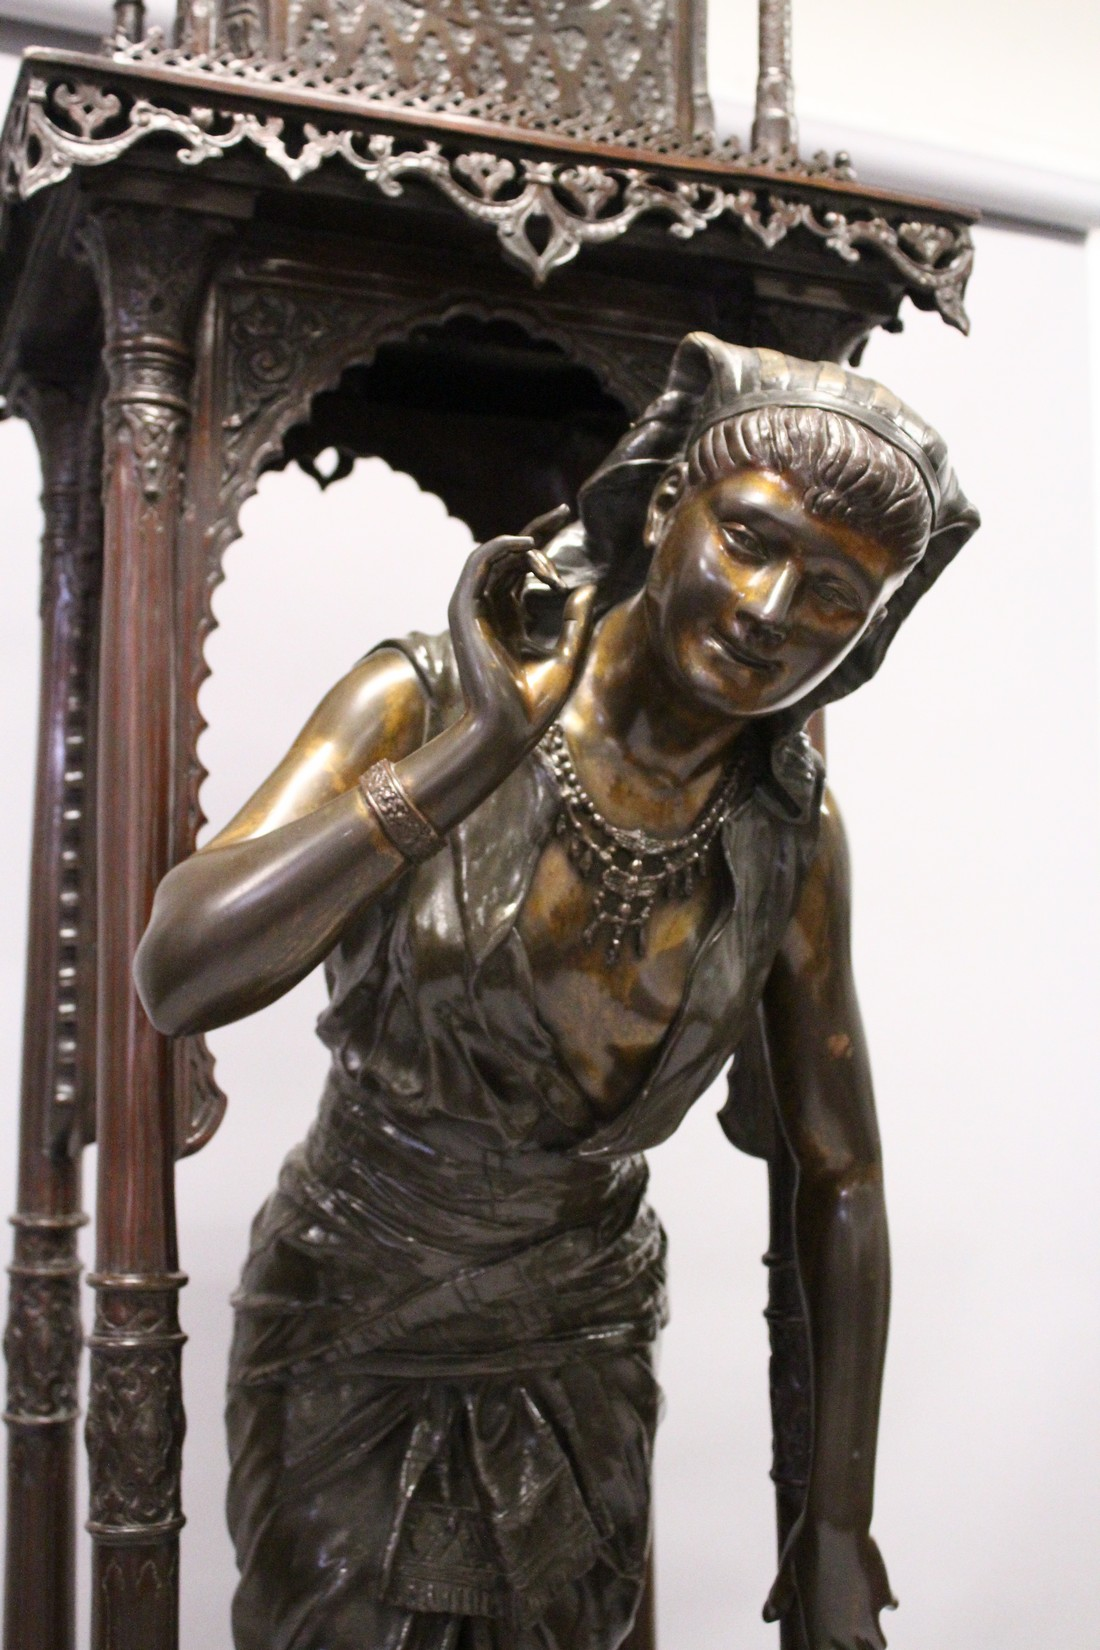 A SUPERB LARGE 19TH CENTURY FRENCH BRONZE OF AN ISLAMIC YOUNG LADY standing in an arbour with four - Image 5 of 9